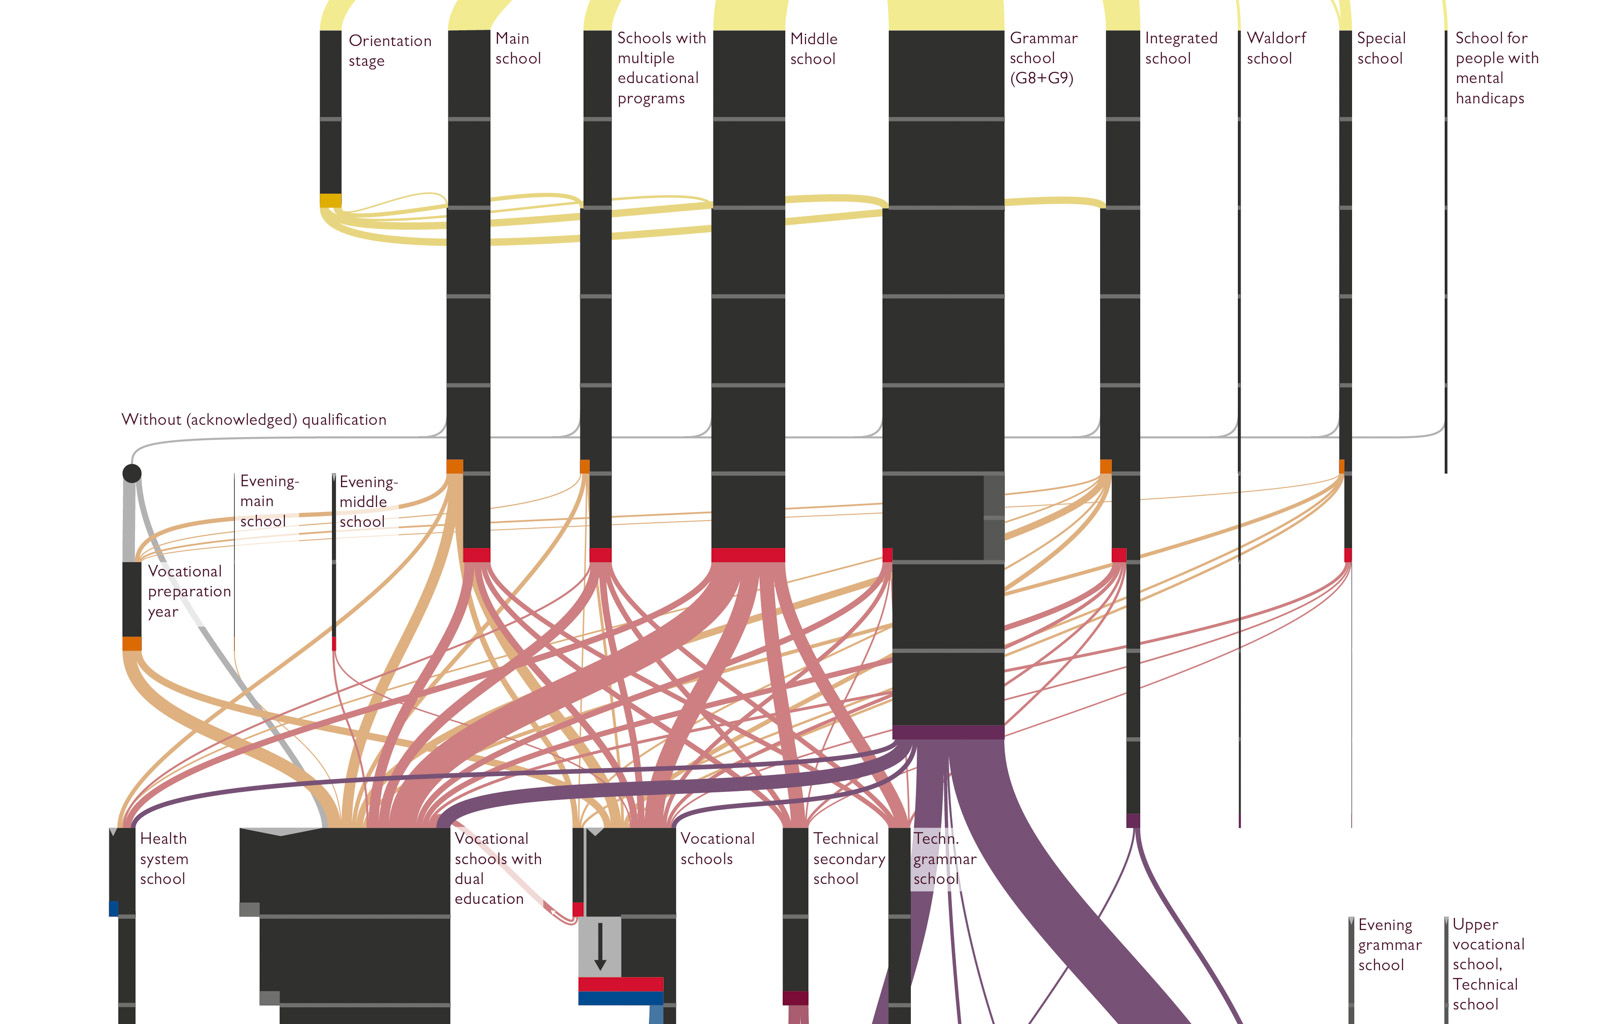 detail of the infographic, many details and connections can be seen